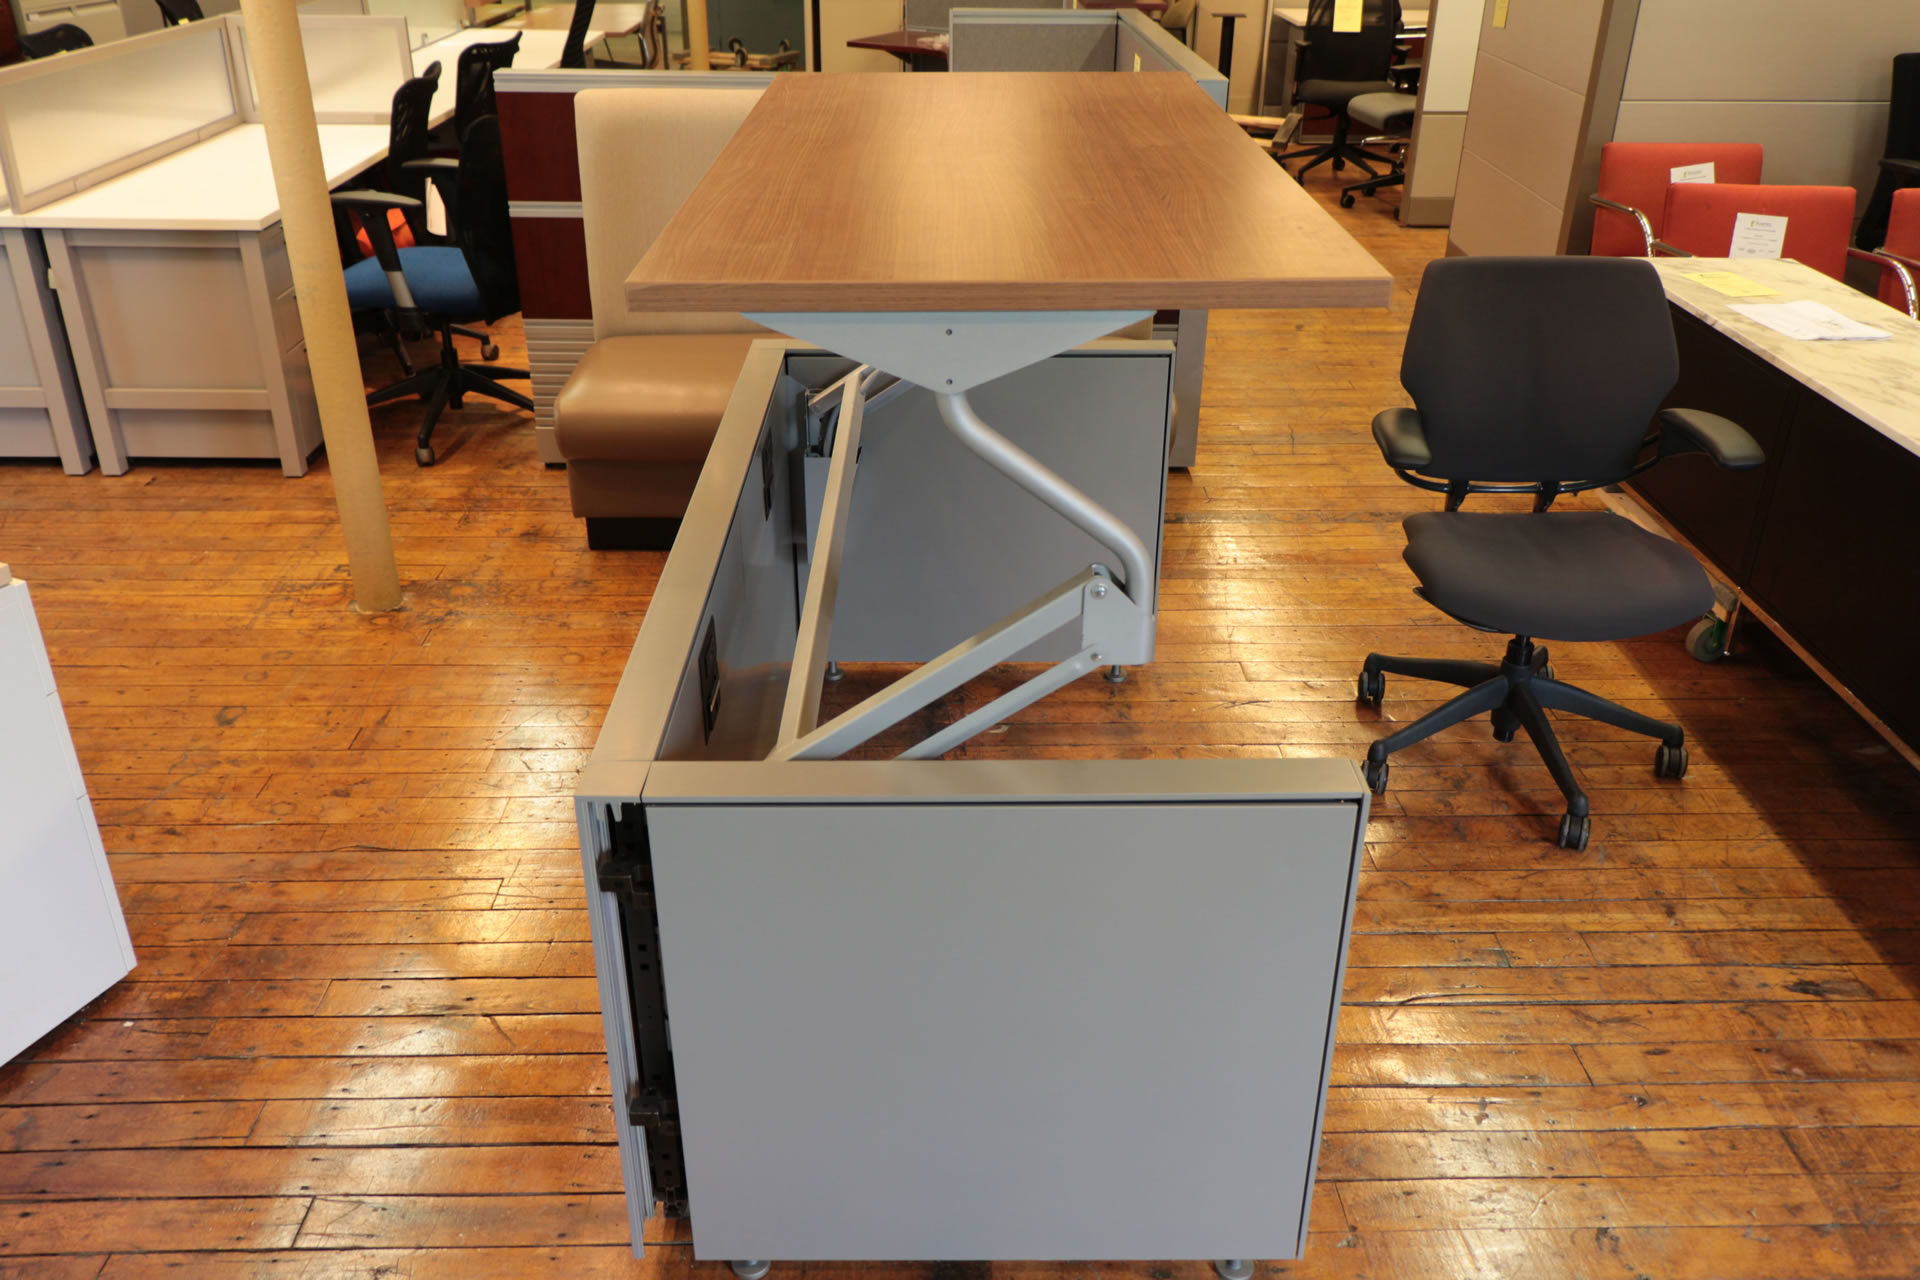 peartreeofficefurniture_peartreeofficefurniture_peartreeofficefurniture_img_8448.jpg